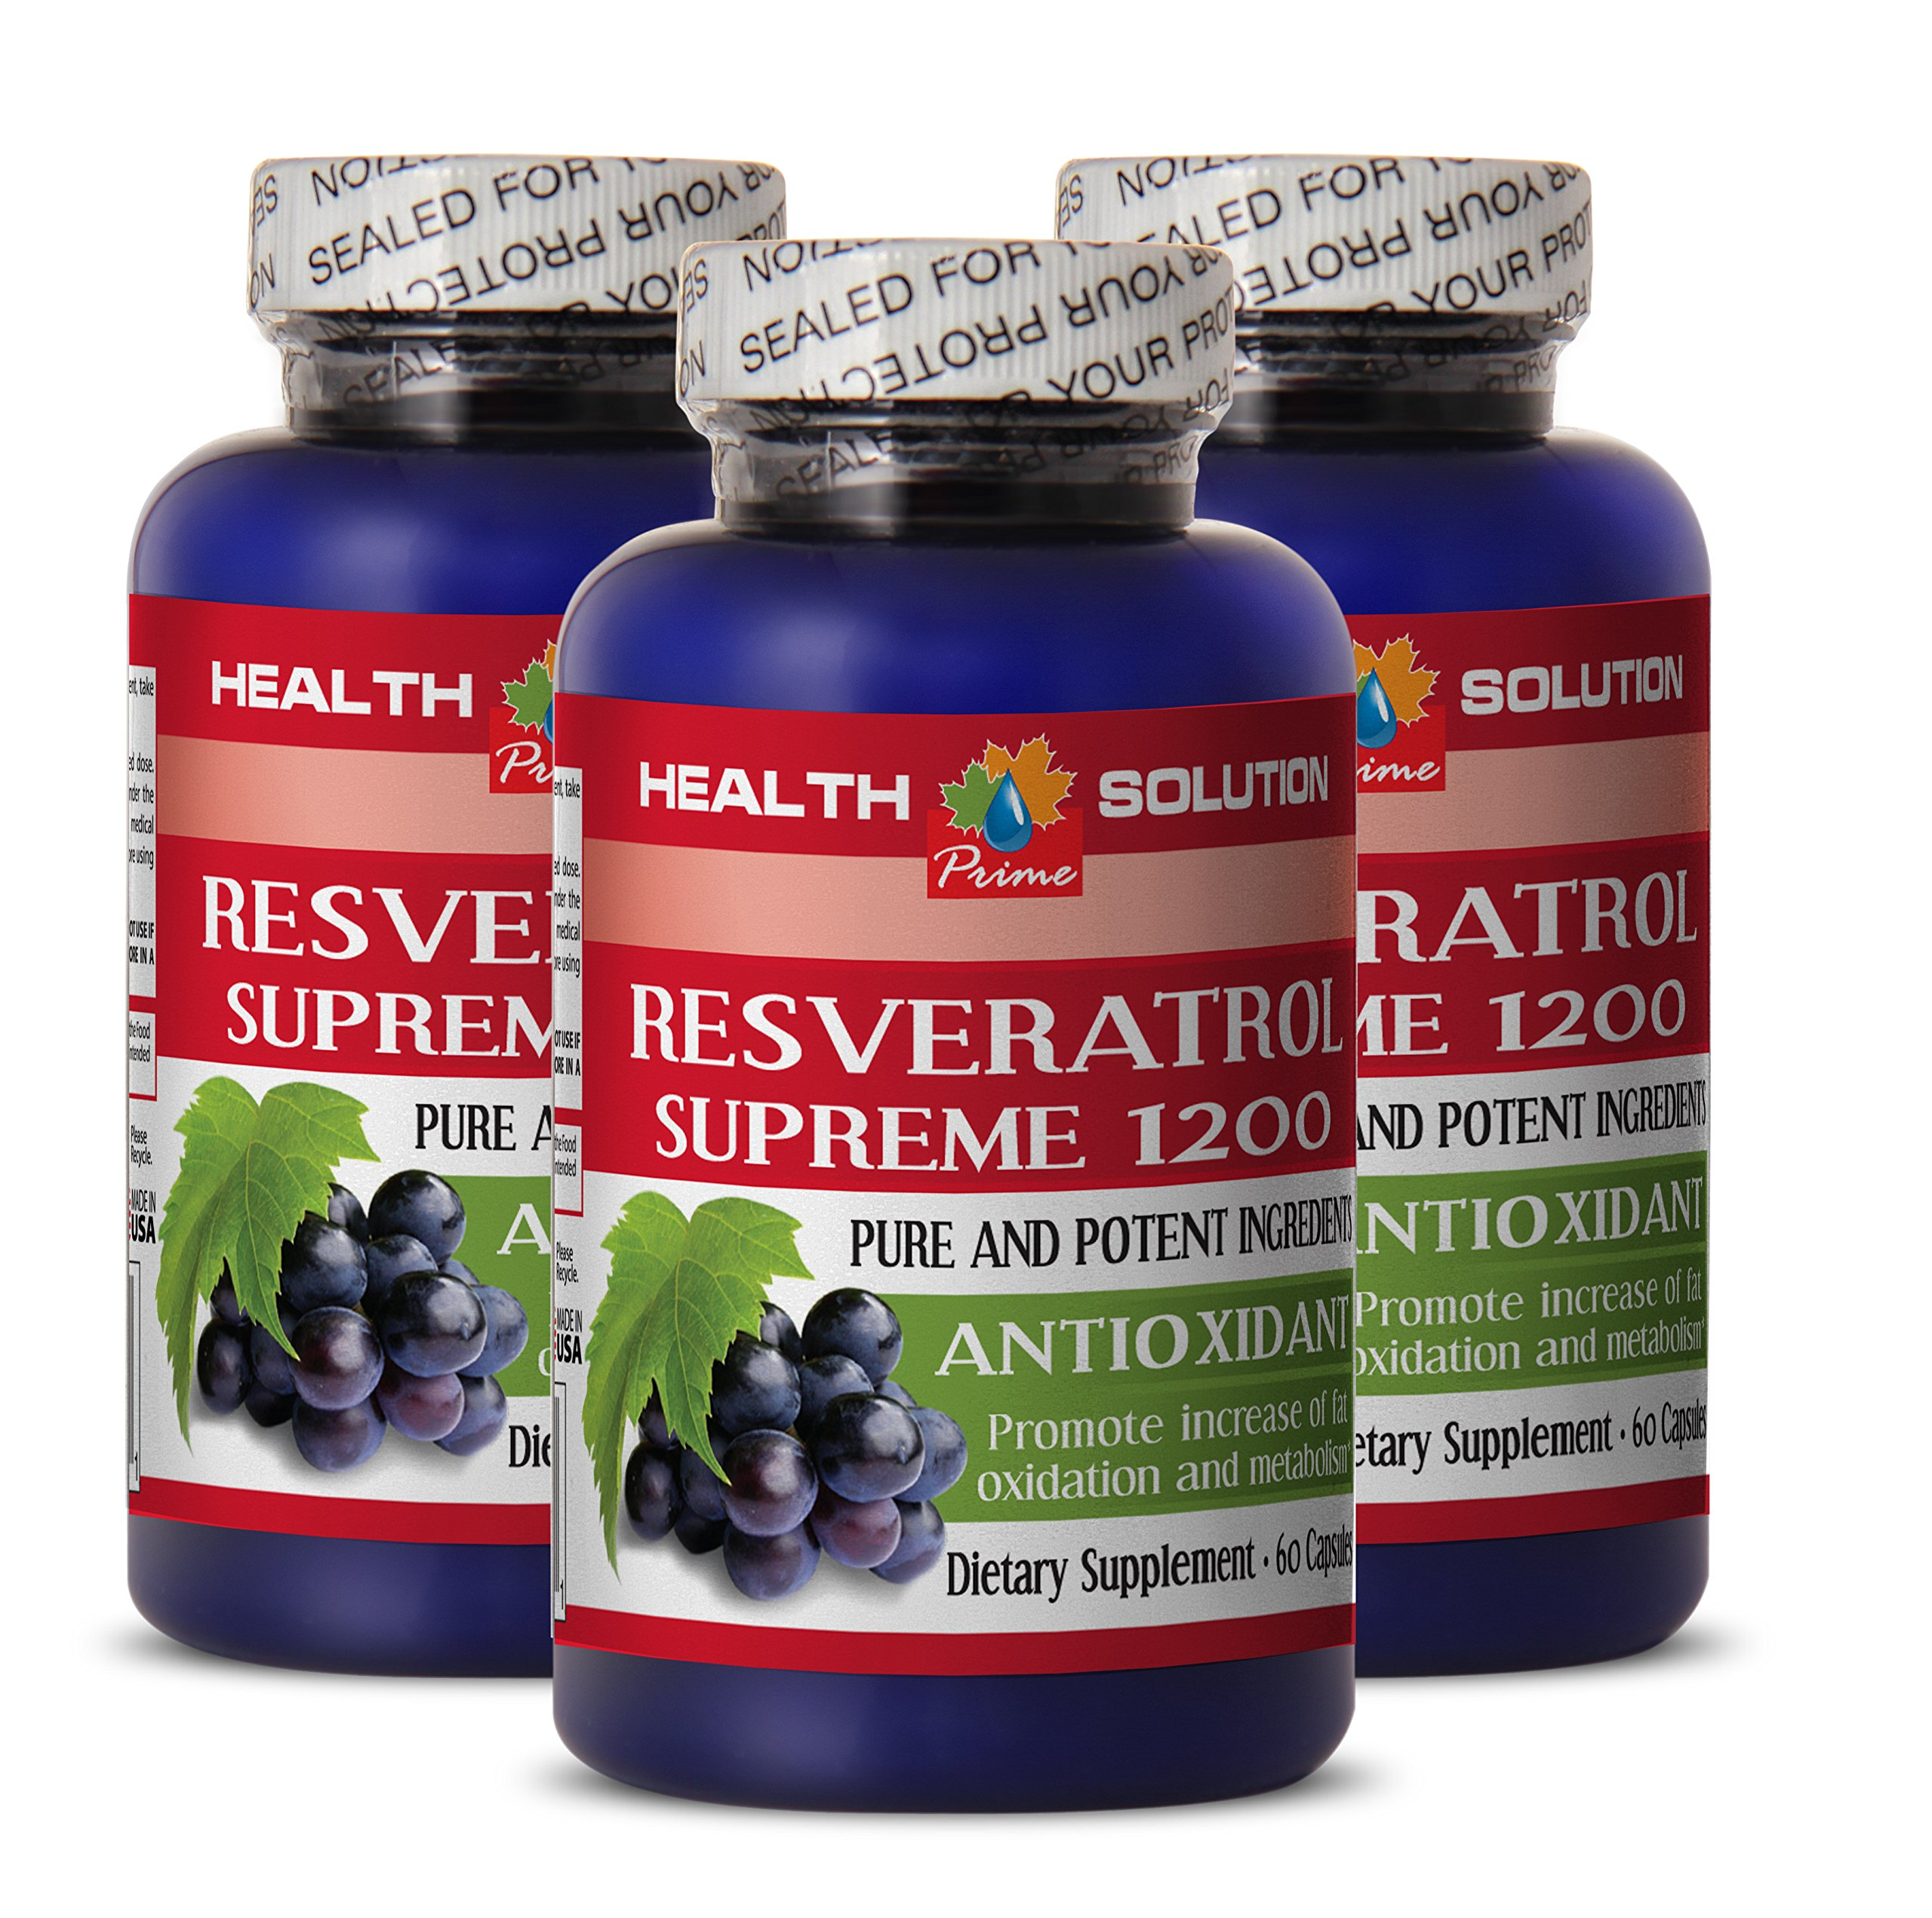 Resveratrol 1200 - RESVERATROL SUPREME 1200MG - help with weight loss (3 Bottles)